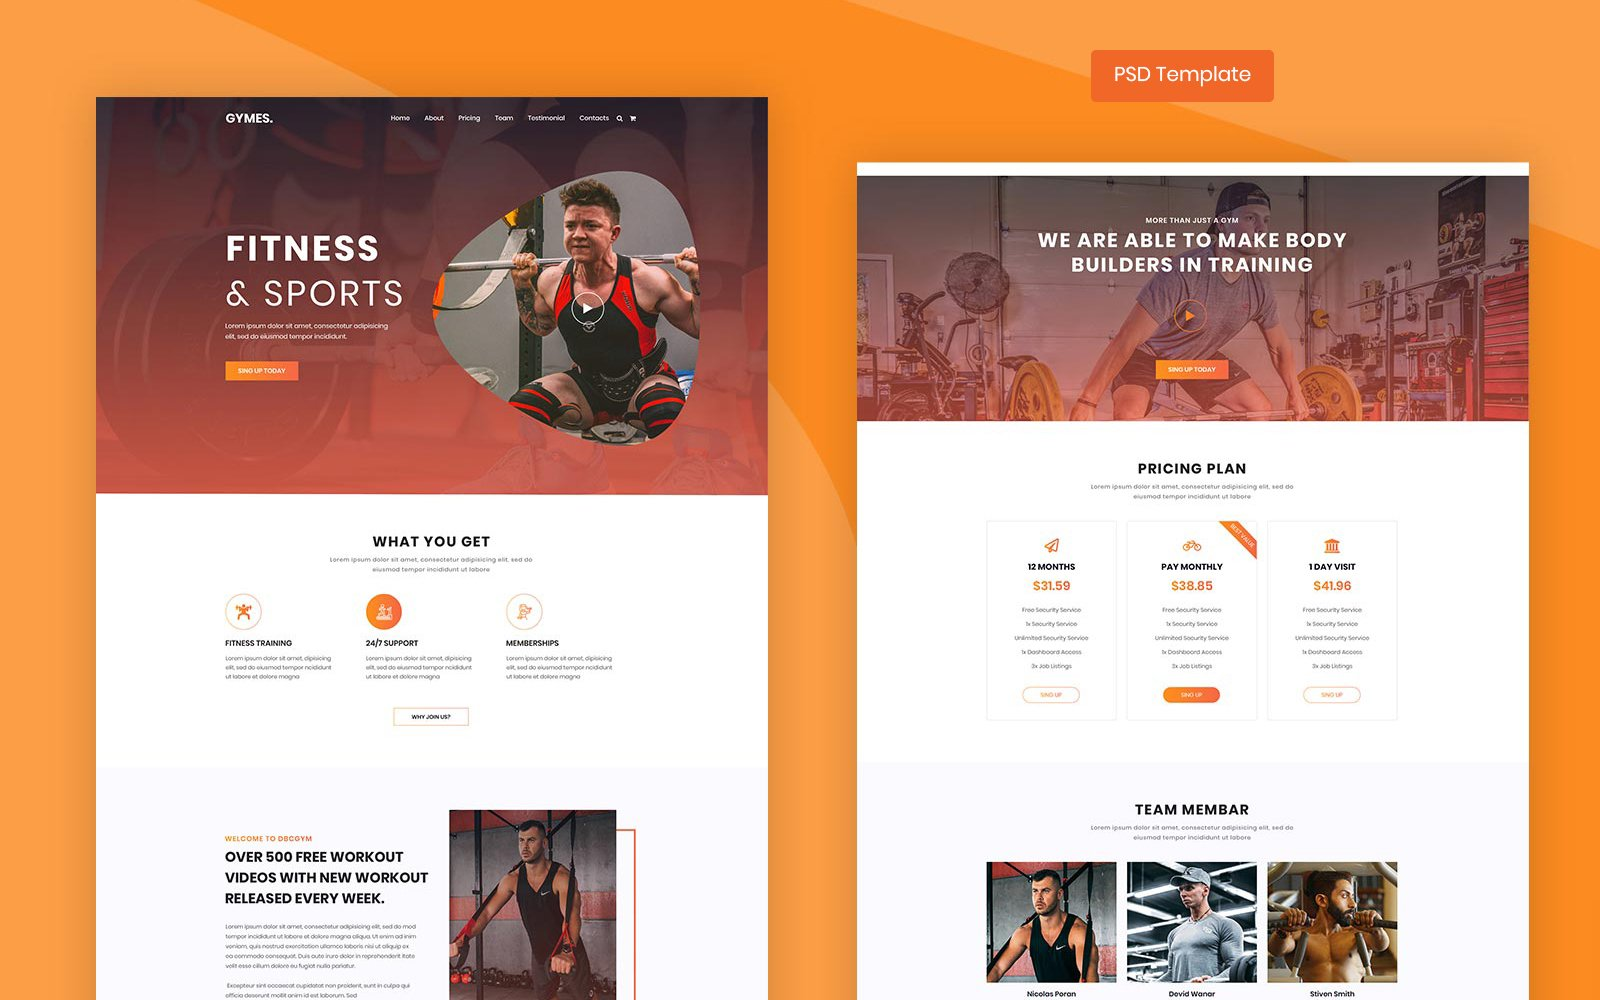 Szablon PSD Gymes - Fitness and Gym PSD #101765